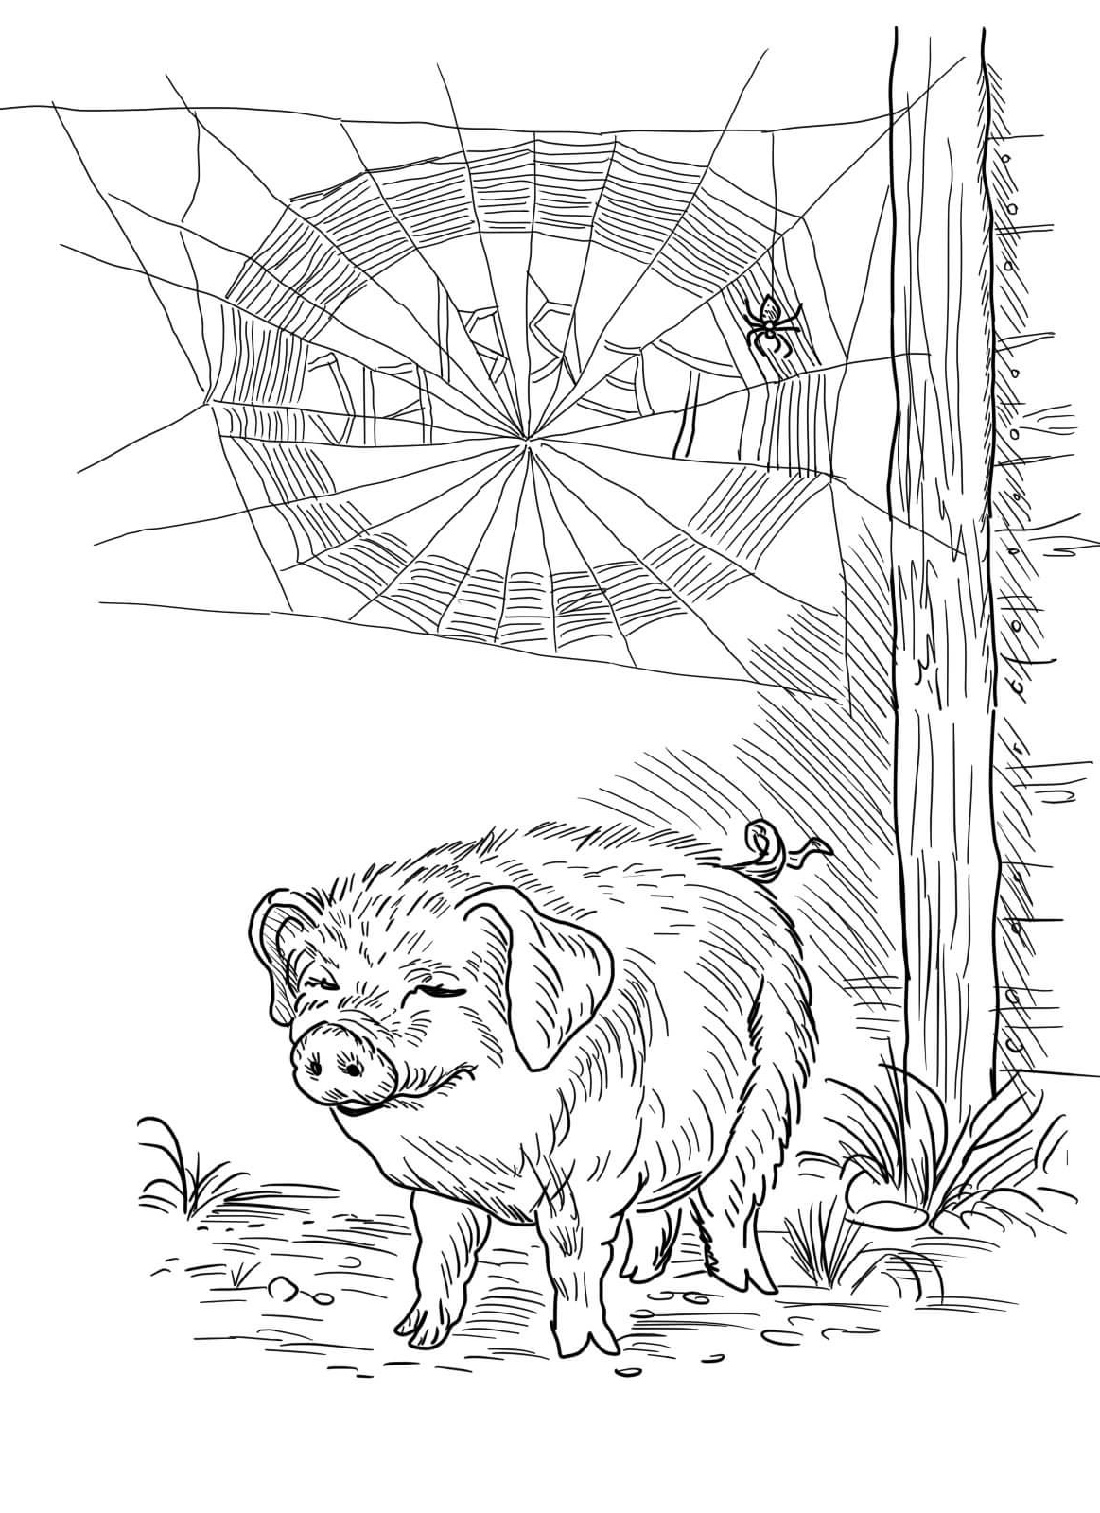 coloring page websites free printable spider web coloring pages for kids coloring page websites